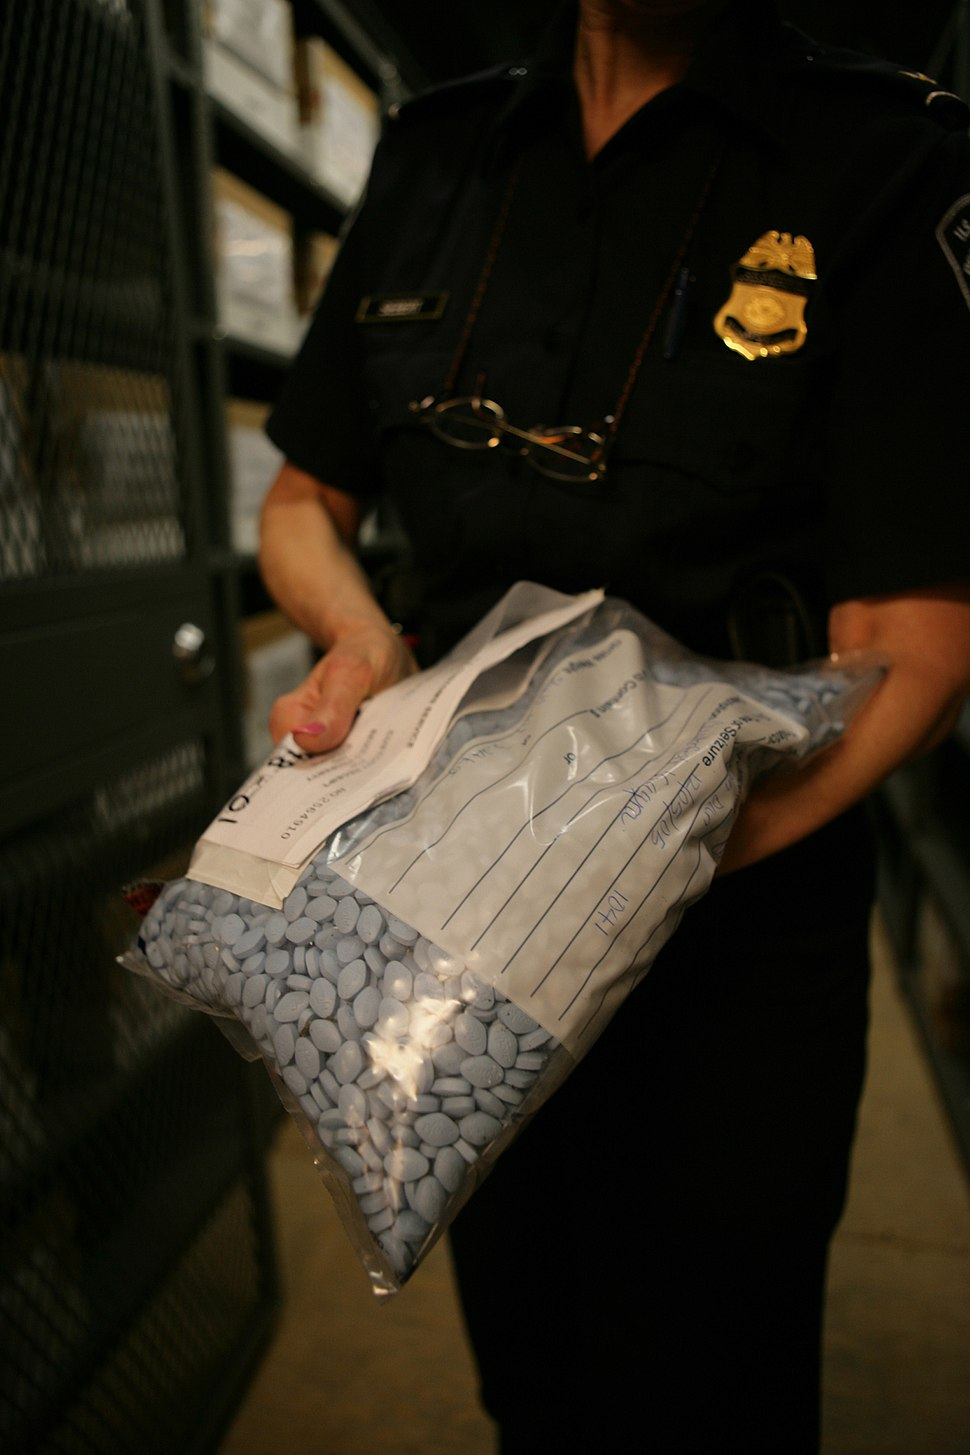 CBP with bag of seized counterfeit Viagra